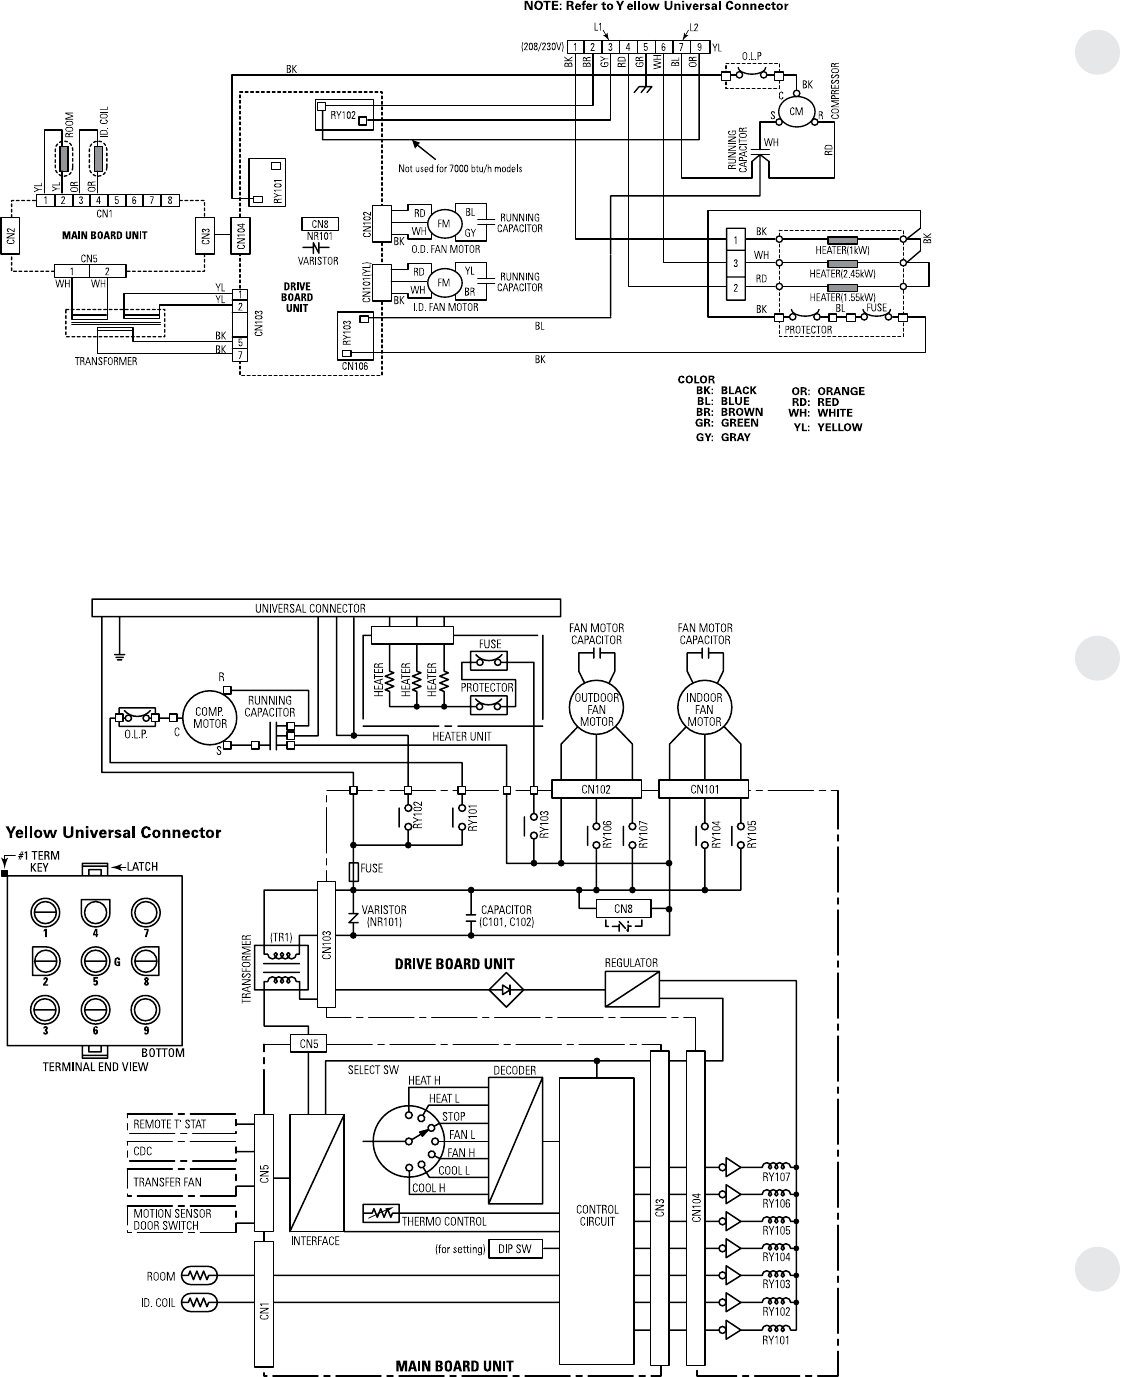 Ge Unit Wiring Diagram | Wiring Diagram Liry Ge Motor Wiring Diagram Kcr Wn Cx on